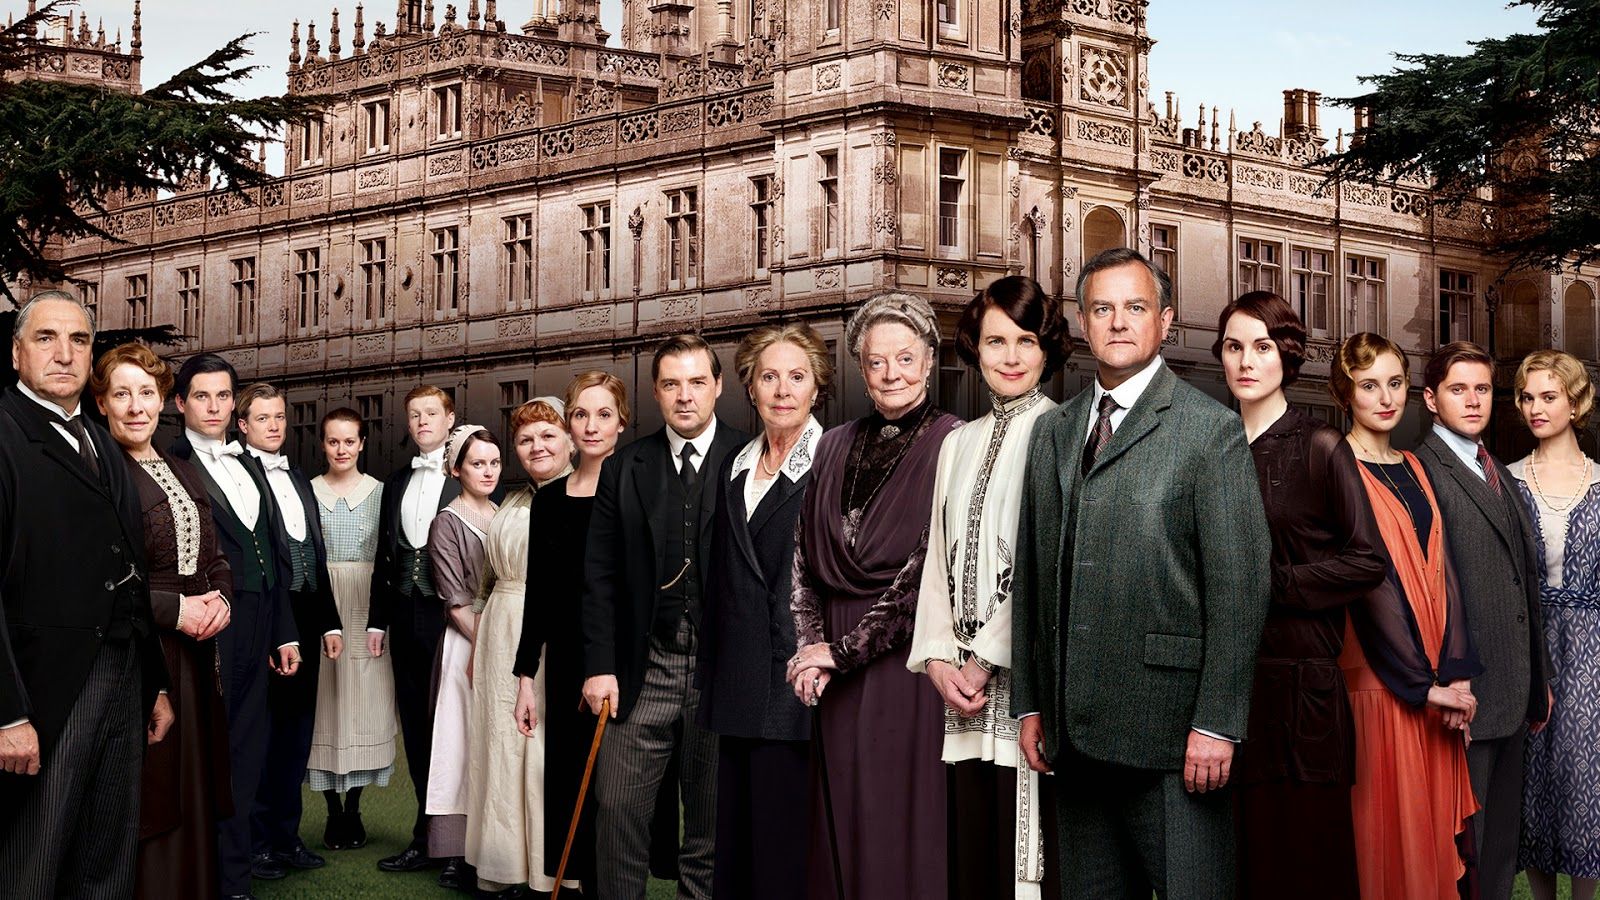 Downton Abbey: svelata la data di uscita del film e cast completo